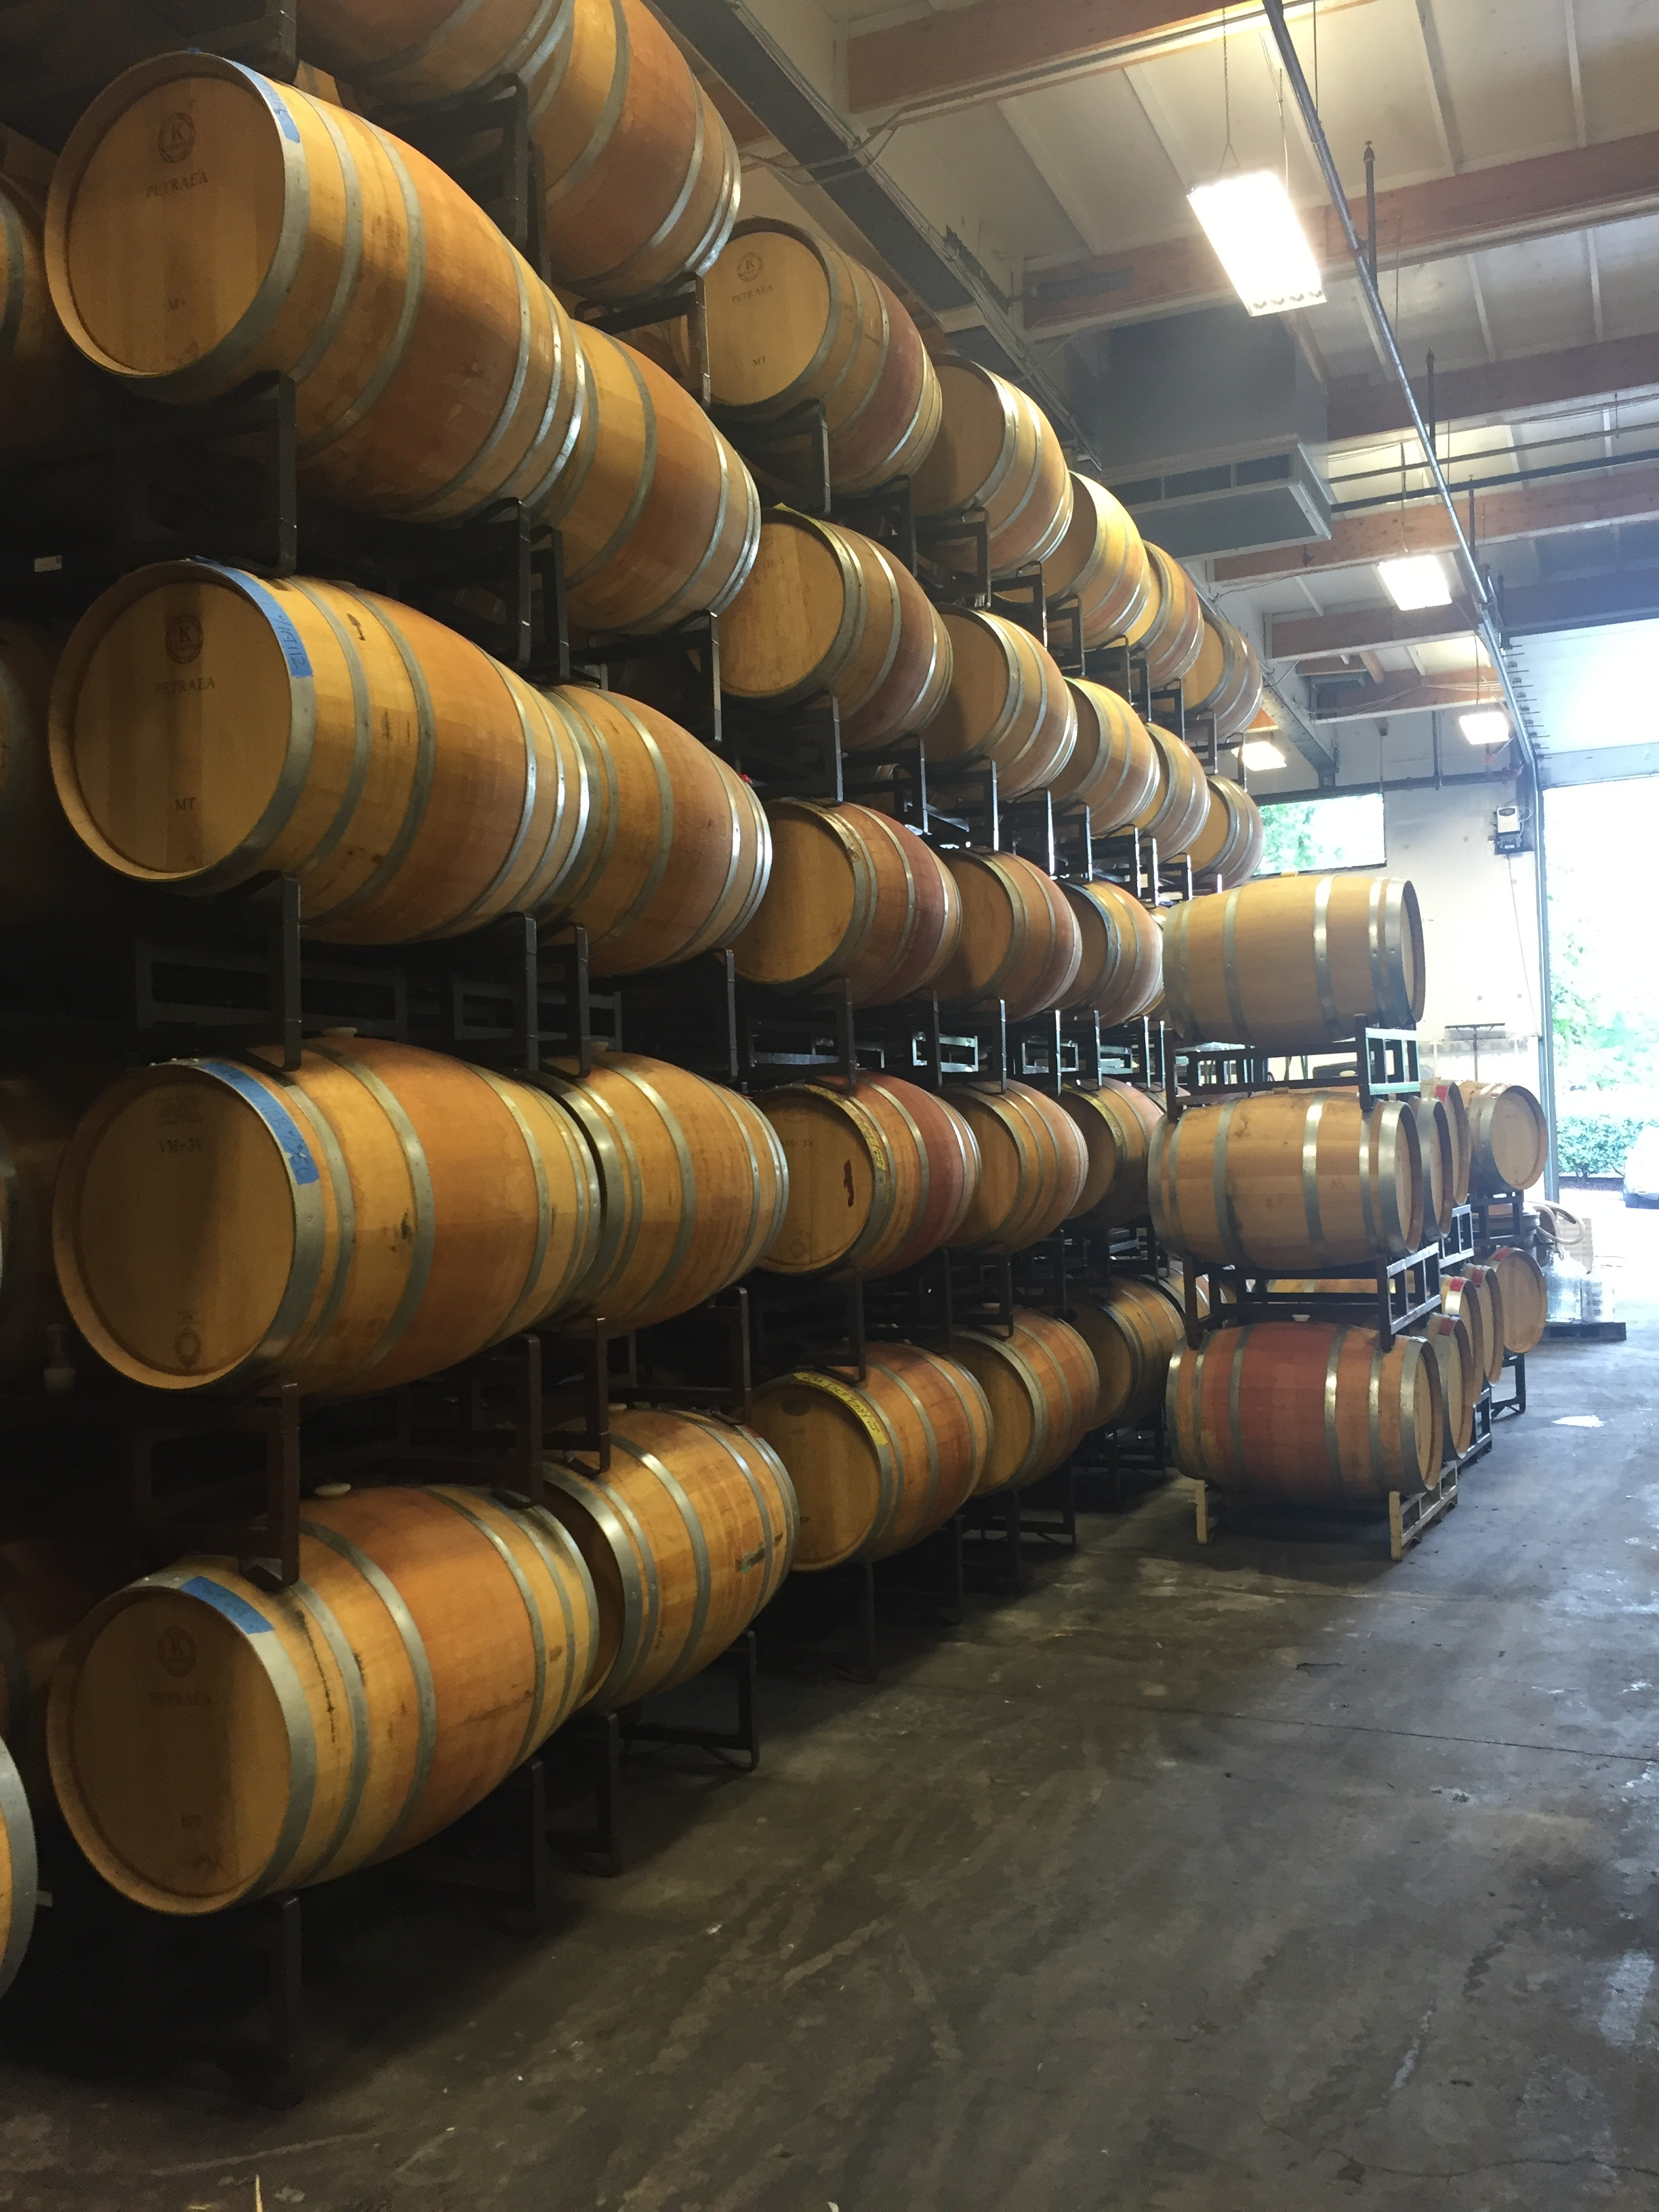 Barrel storage and aging at the Almquist Family Vintners facilities